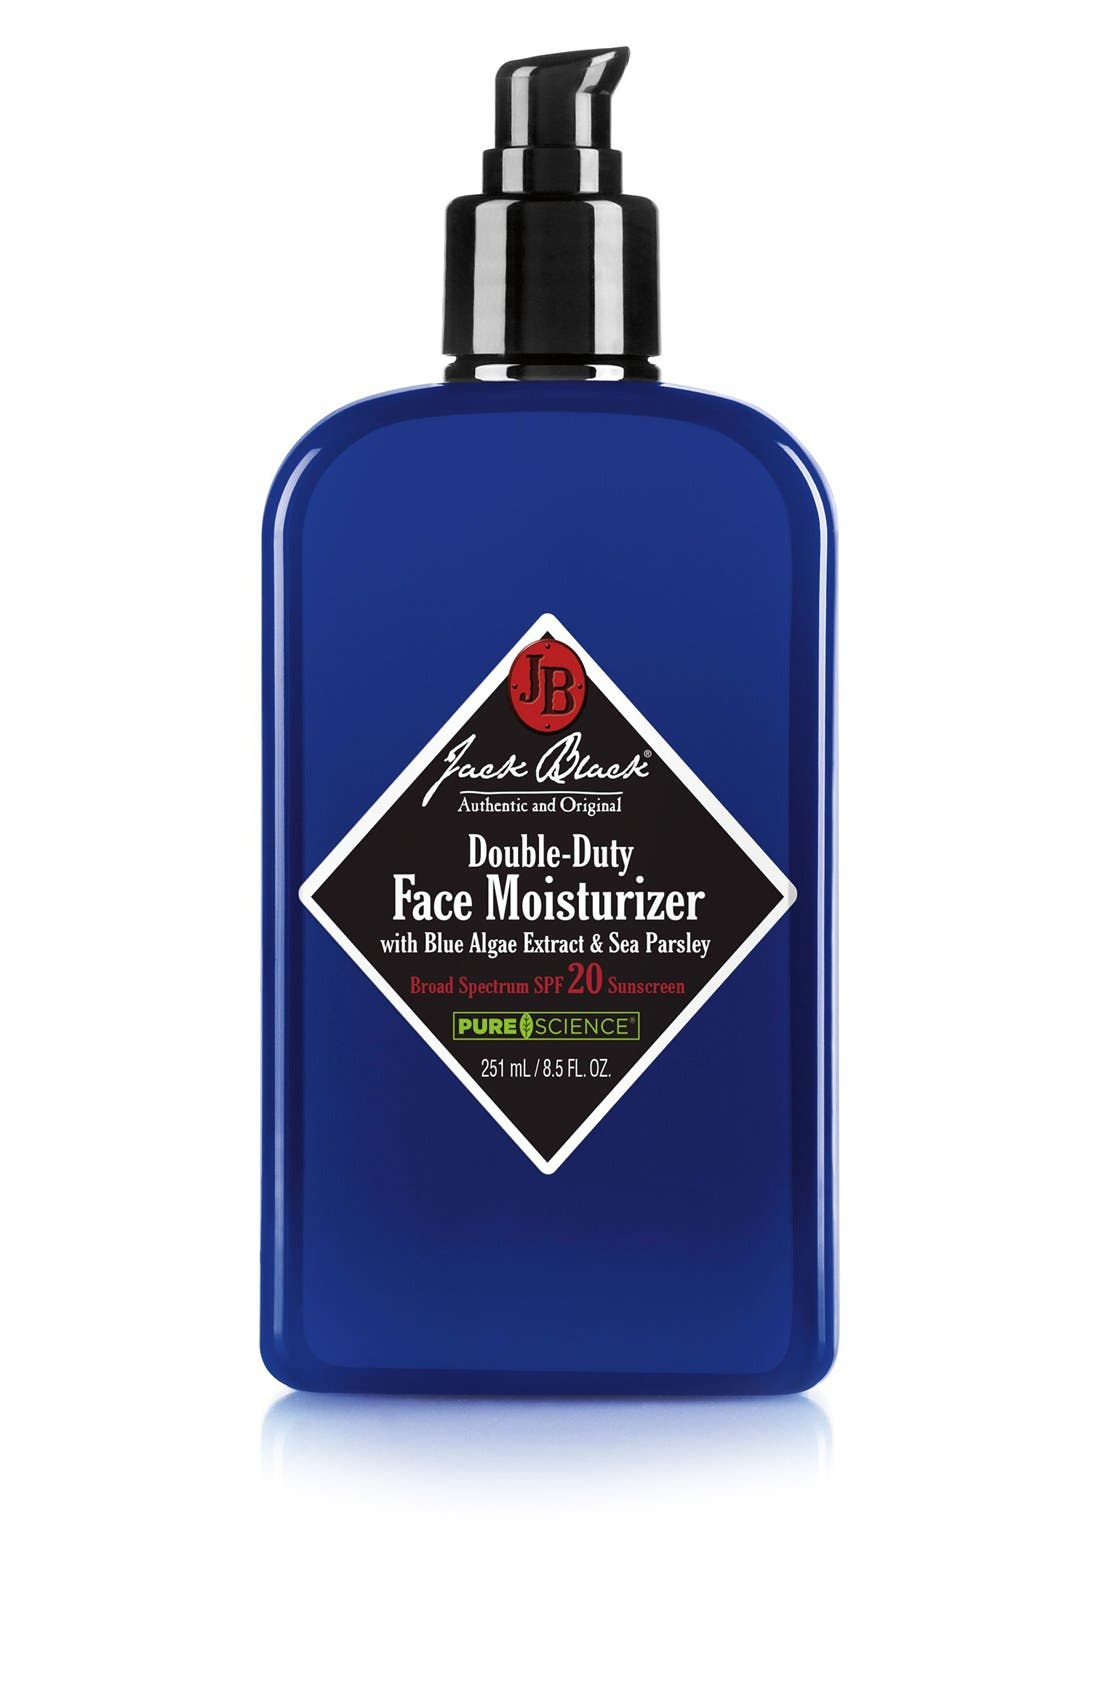 Jack Black 'Double-Duty' Face Moisturizer SPF 20 (Jumbo Size) ($72 Value)